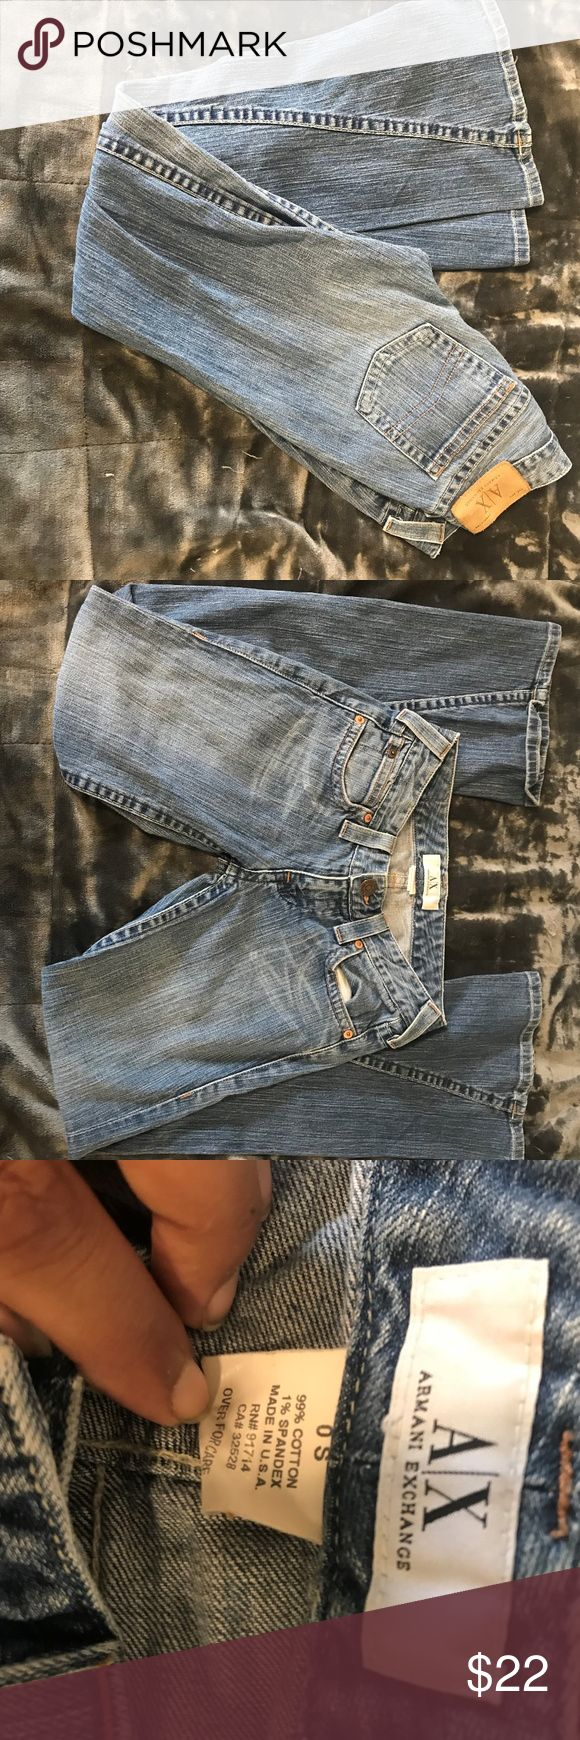 Armani Exchange Women 0s Light Wash Blue Jeans The jeans are in really good condition. They are a cotton blend and a light wash. The seam of the pants are 30in and the waist of them are 26in. Armani Exchange Jeans Boot Cut